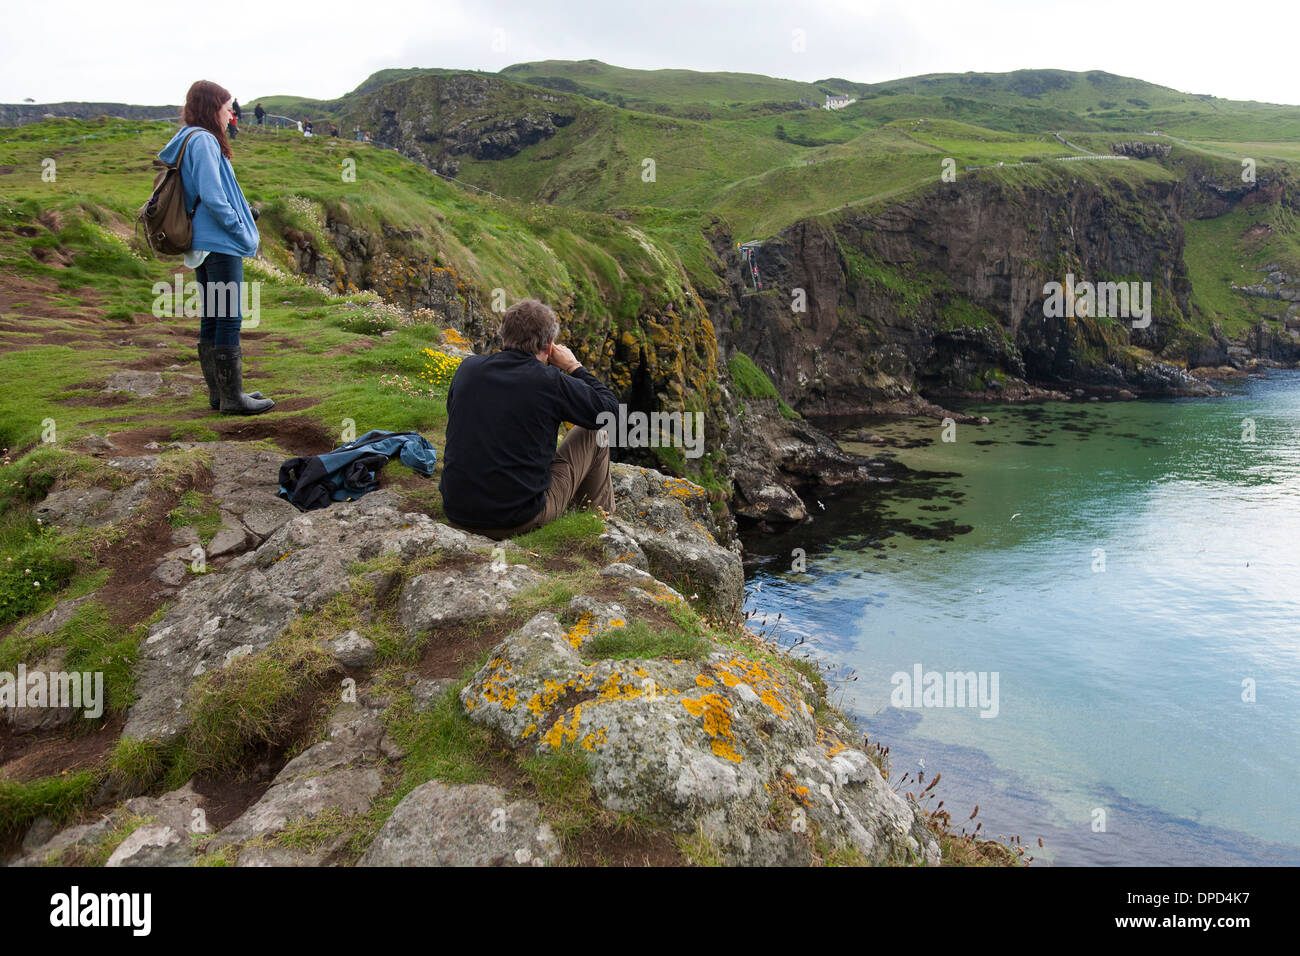 A girl looks at the view along the Antrim coast seen from Carrickarede Island a National Trust property in Northern Ireland. - Stock Image